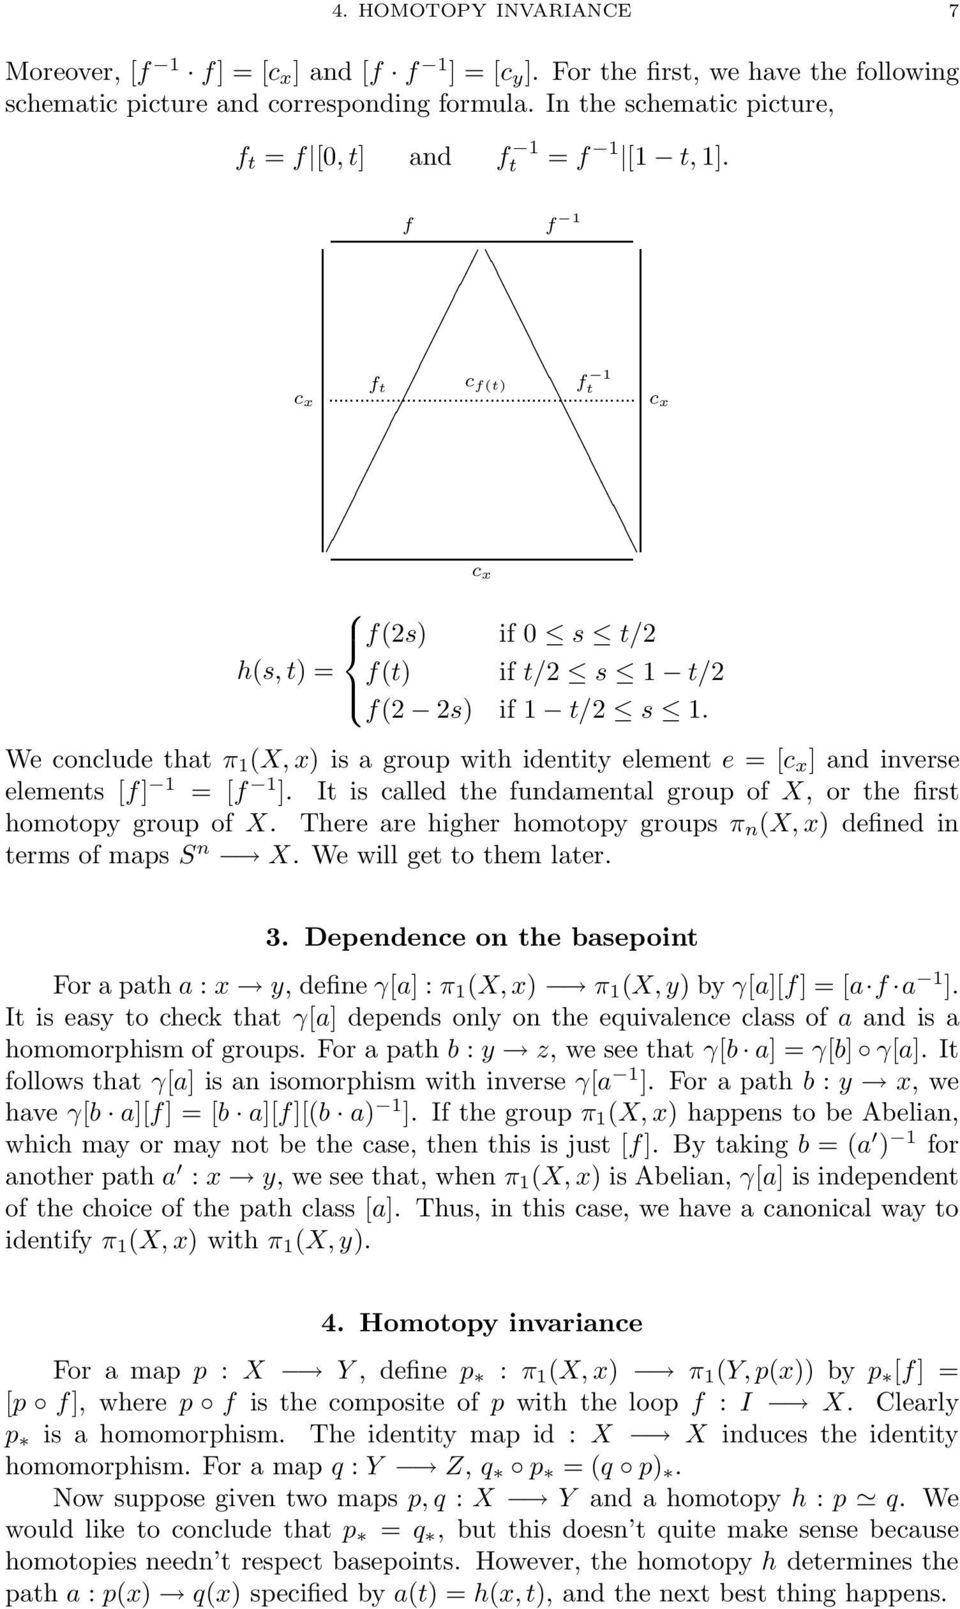 We conclude that π 1 (X, x) is a group with identity element e = [c x ] and inverse elements [f] 1 = [f 1 ]. It is called the fundamental group of X, or the first homotopy group of X.